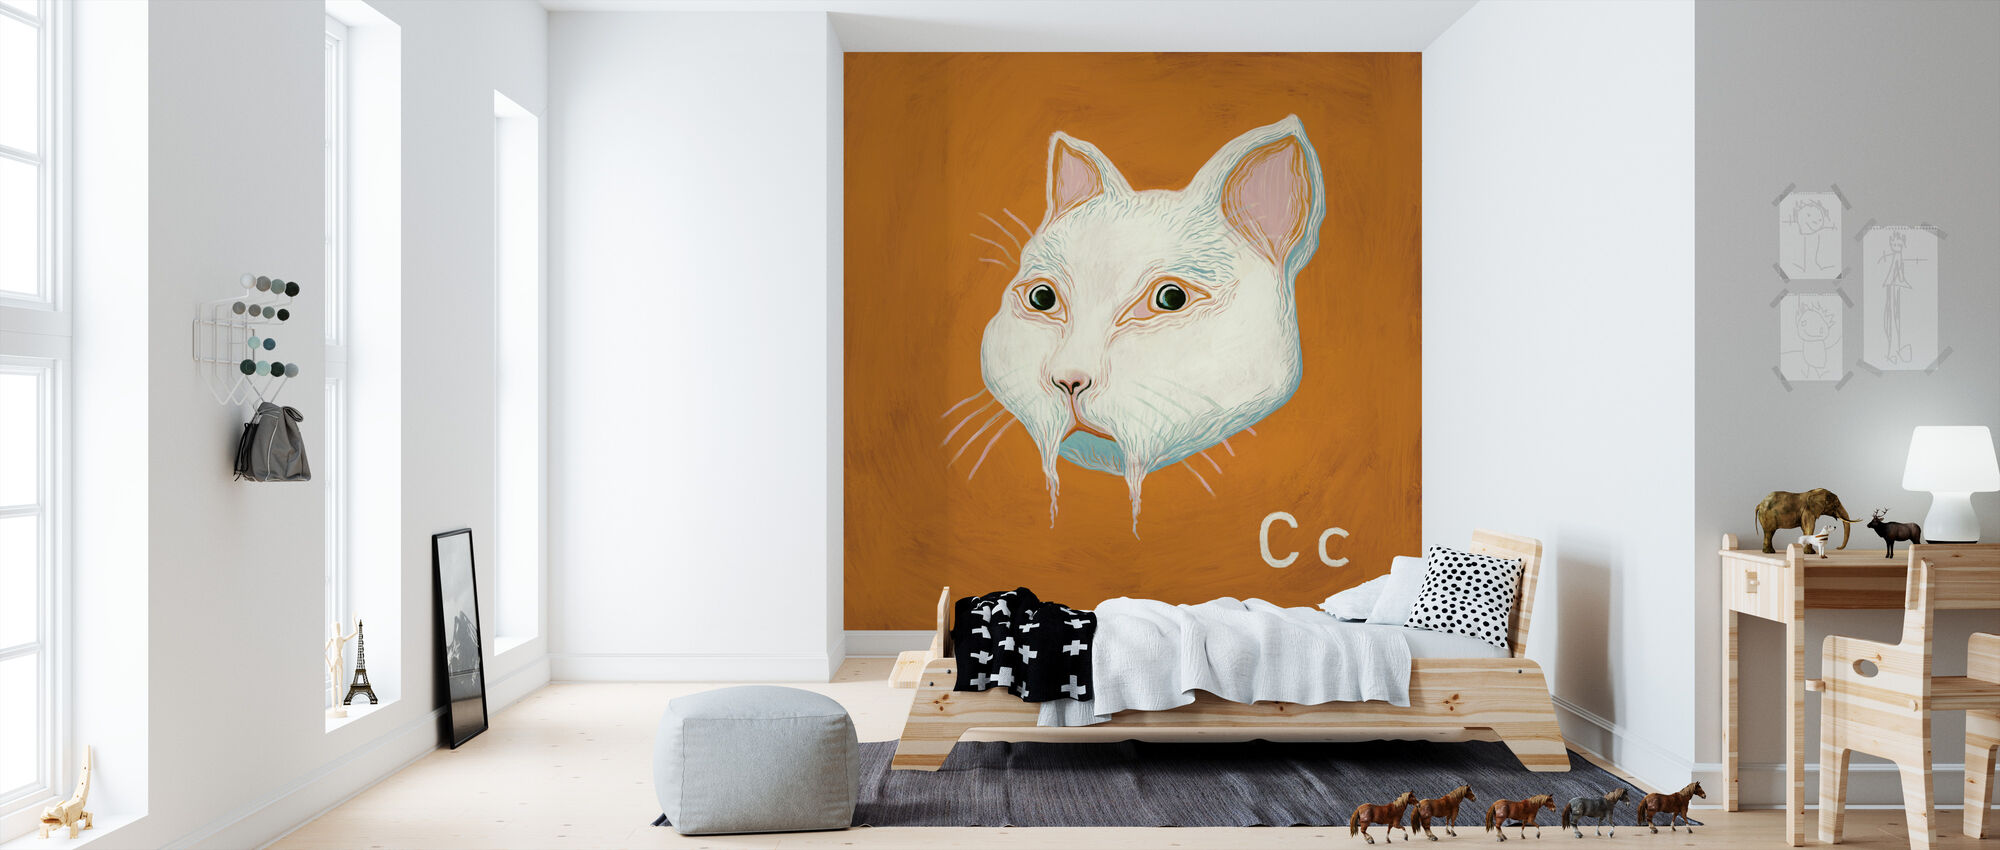 Cat with C - Wallpaper - Kids Room